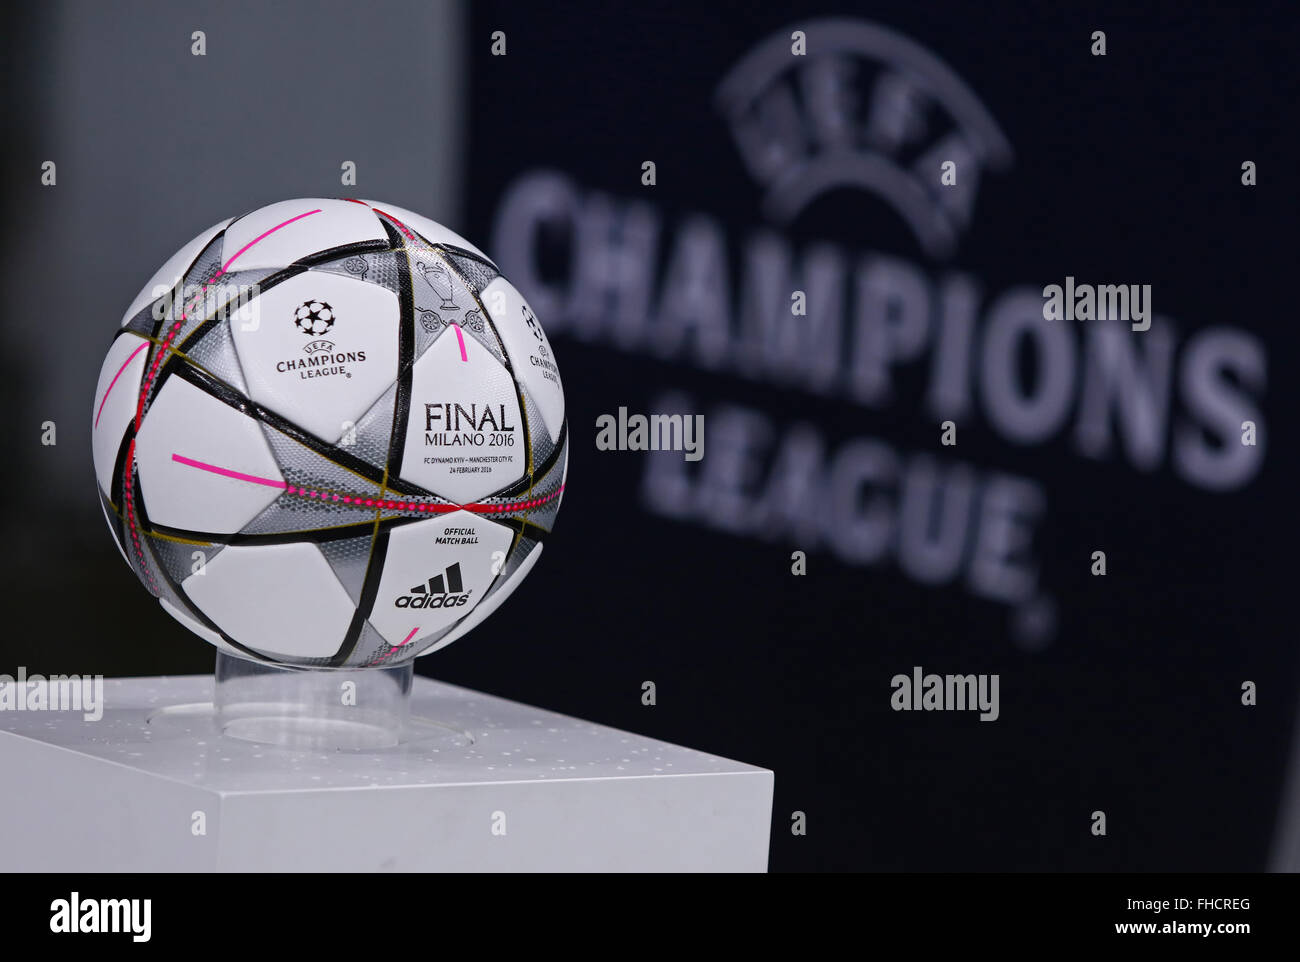 Adidas Official Football Stock Photos   Adidas Official Football ... 8037f2ce6bbe9